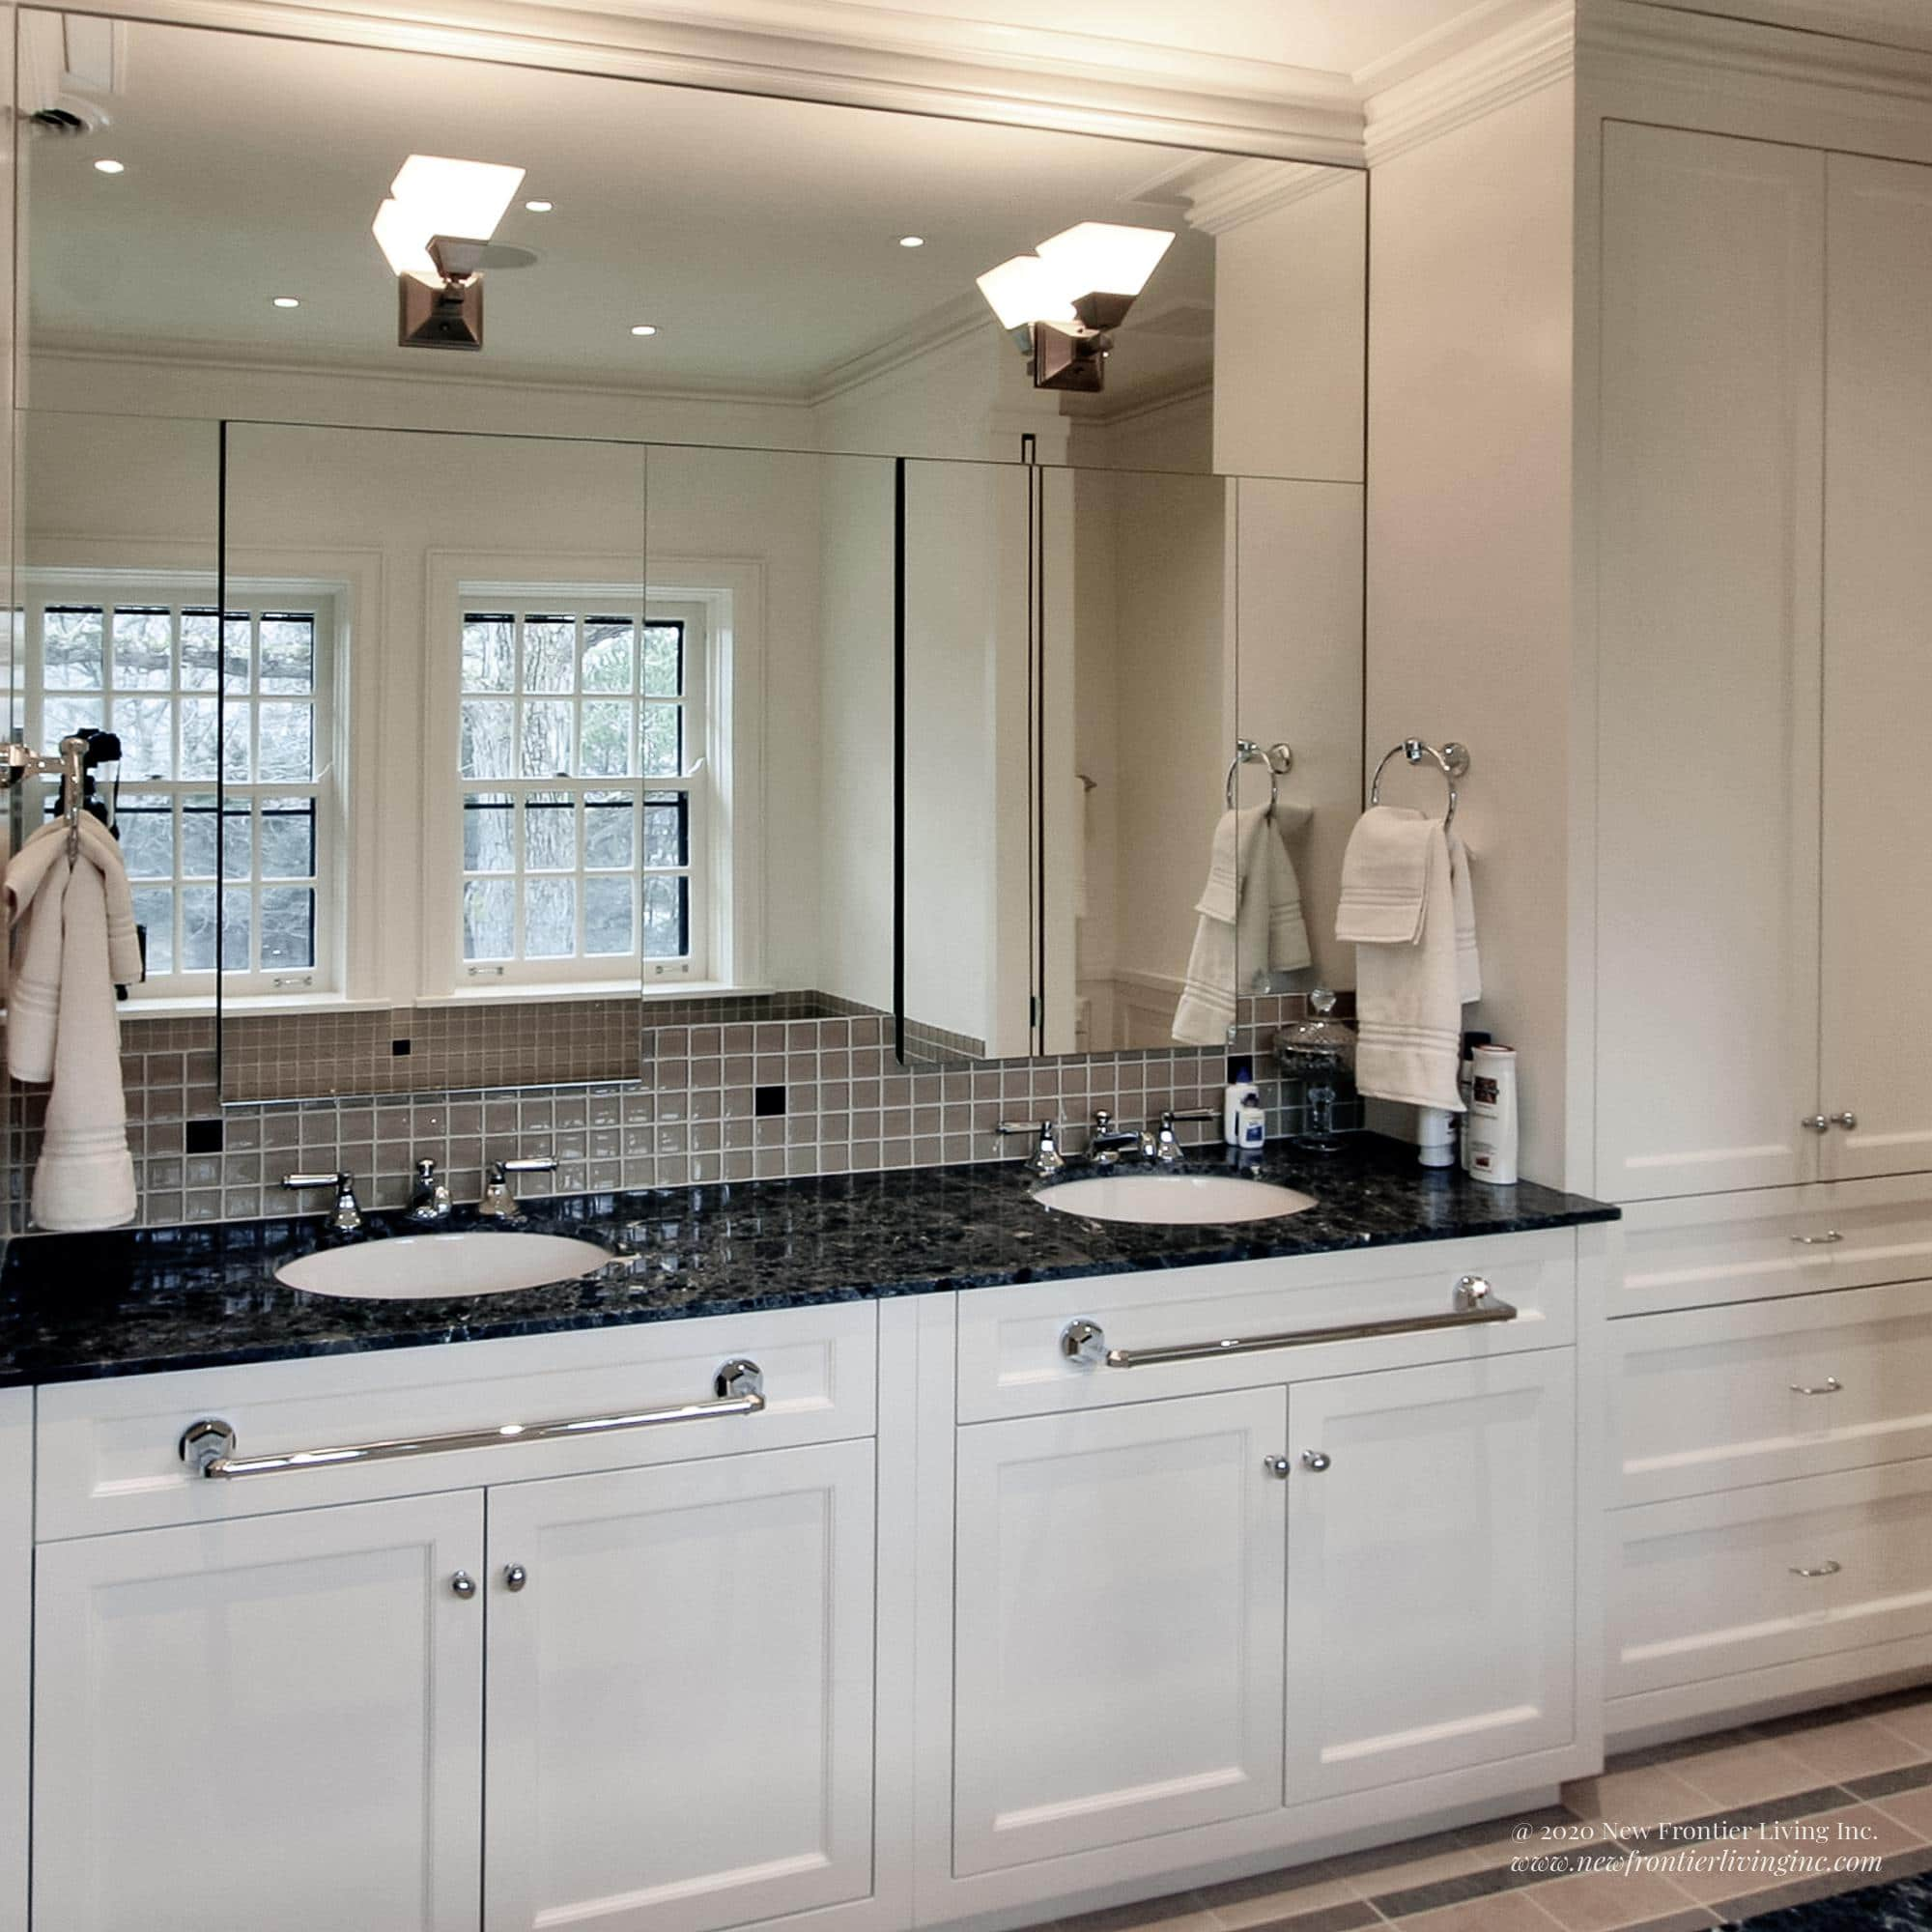 White bathroom with dark gray countertops and double sinks